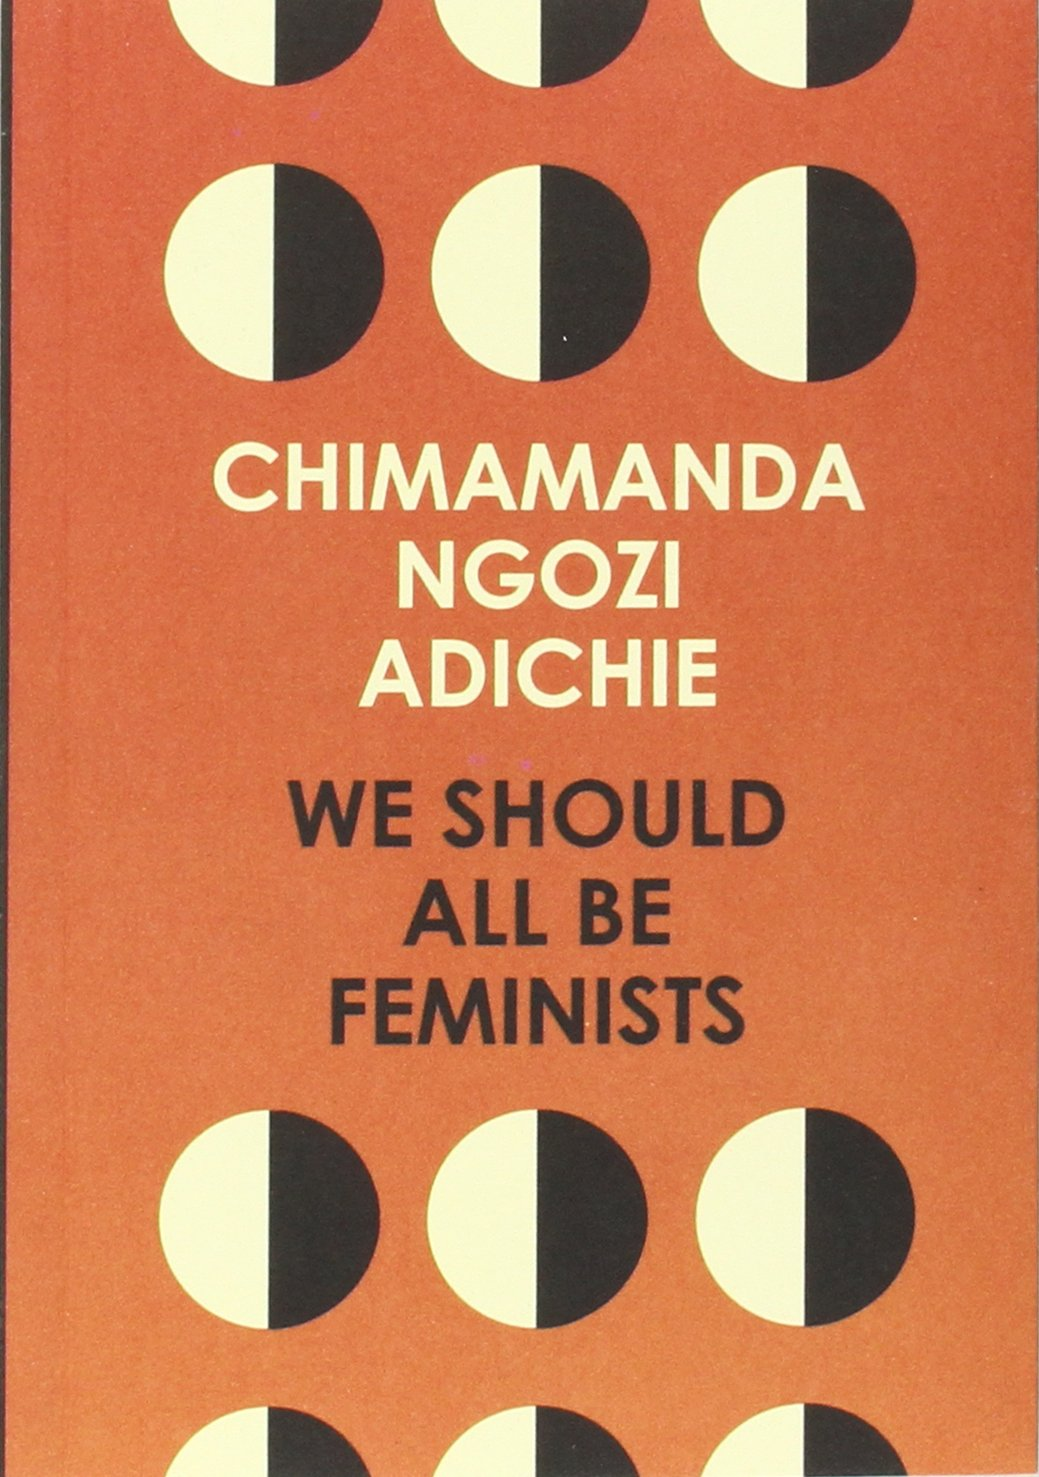 we should all be feminists co uk chimamanda ngozi adichie we should all be feminists co uk chimamanda ngozi adichie 9780008115272 books